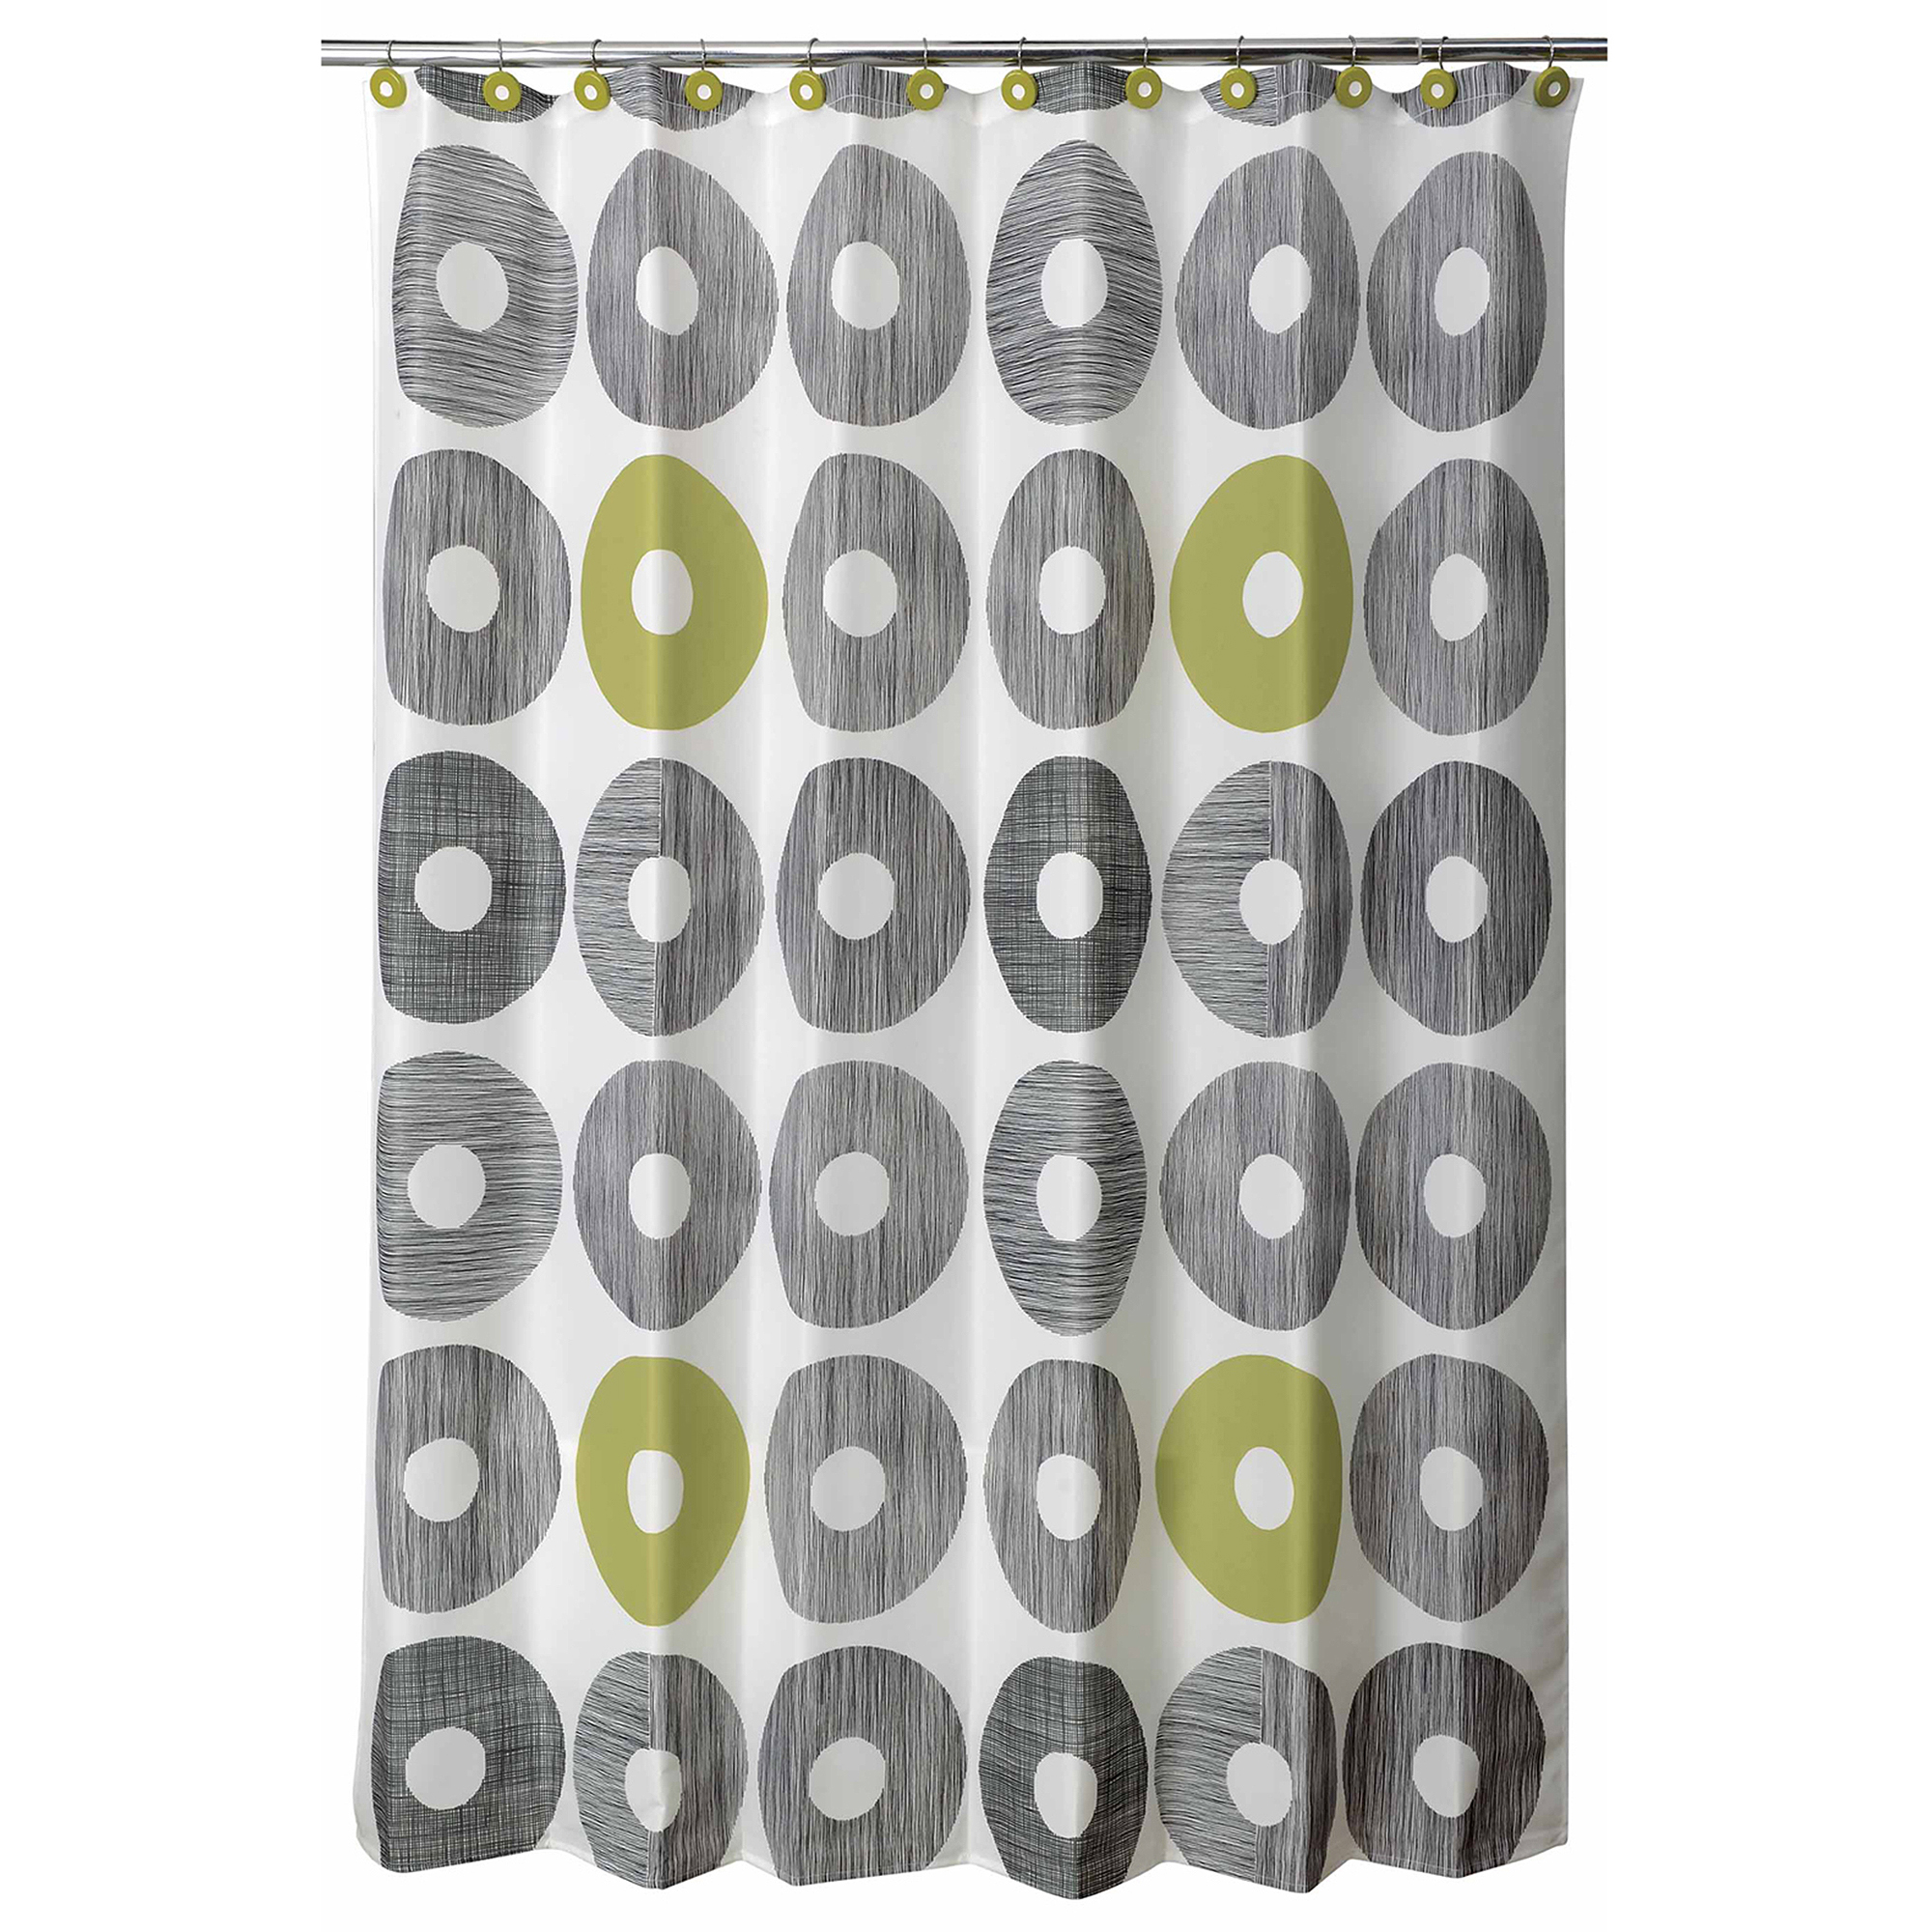 Bathroom and shower accessories - Bathroom And Shower Accessories 33